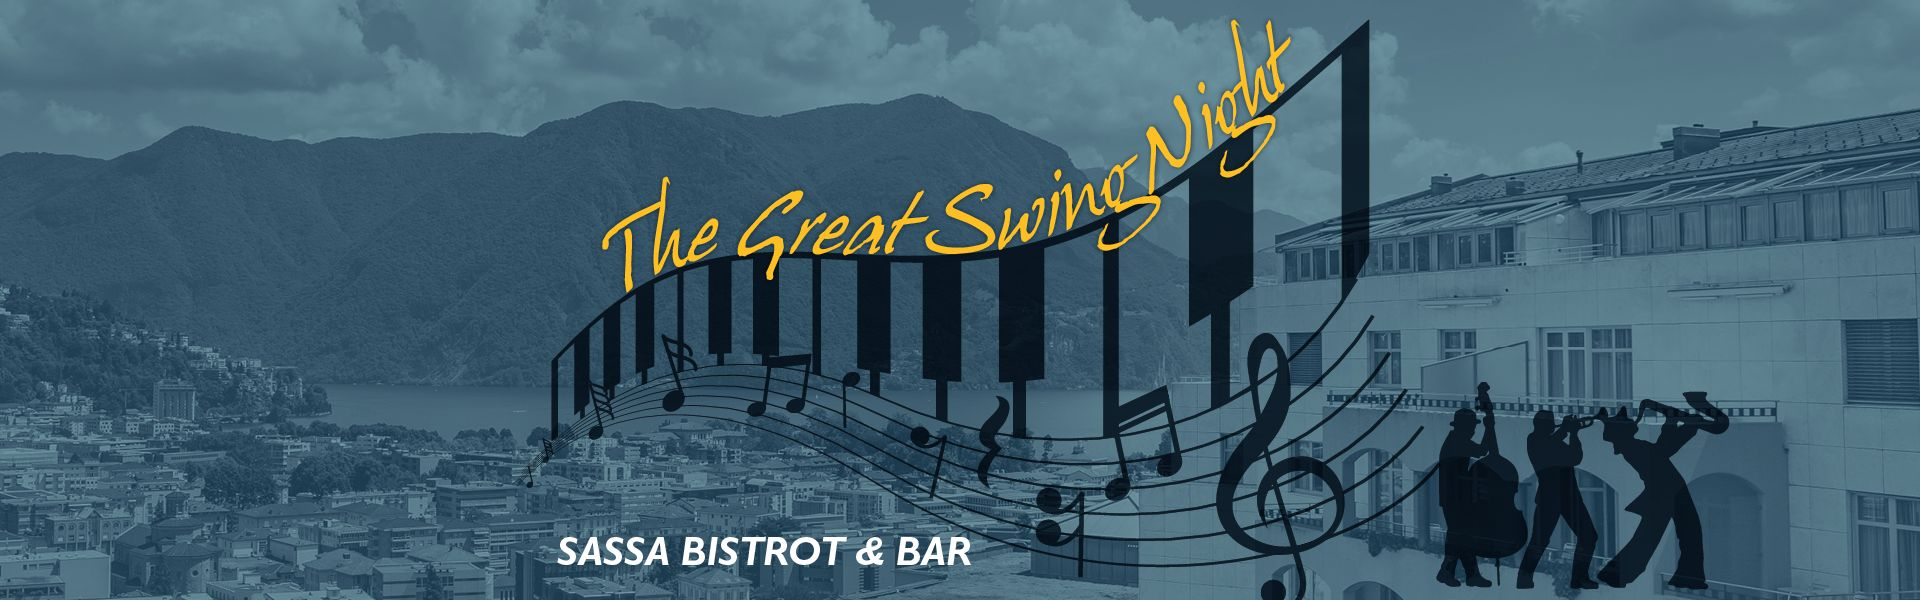 The Great Swing Night